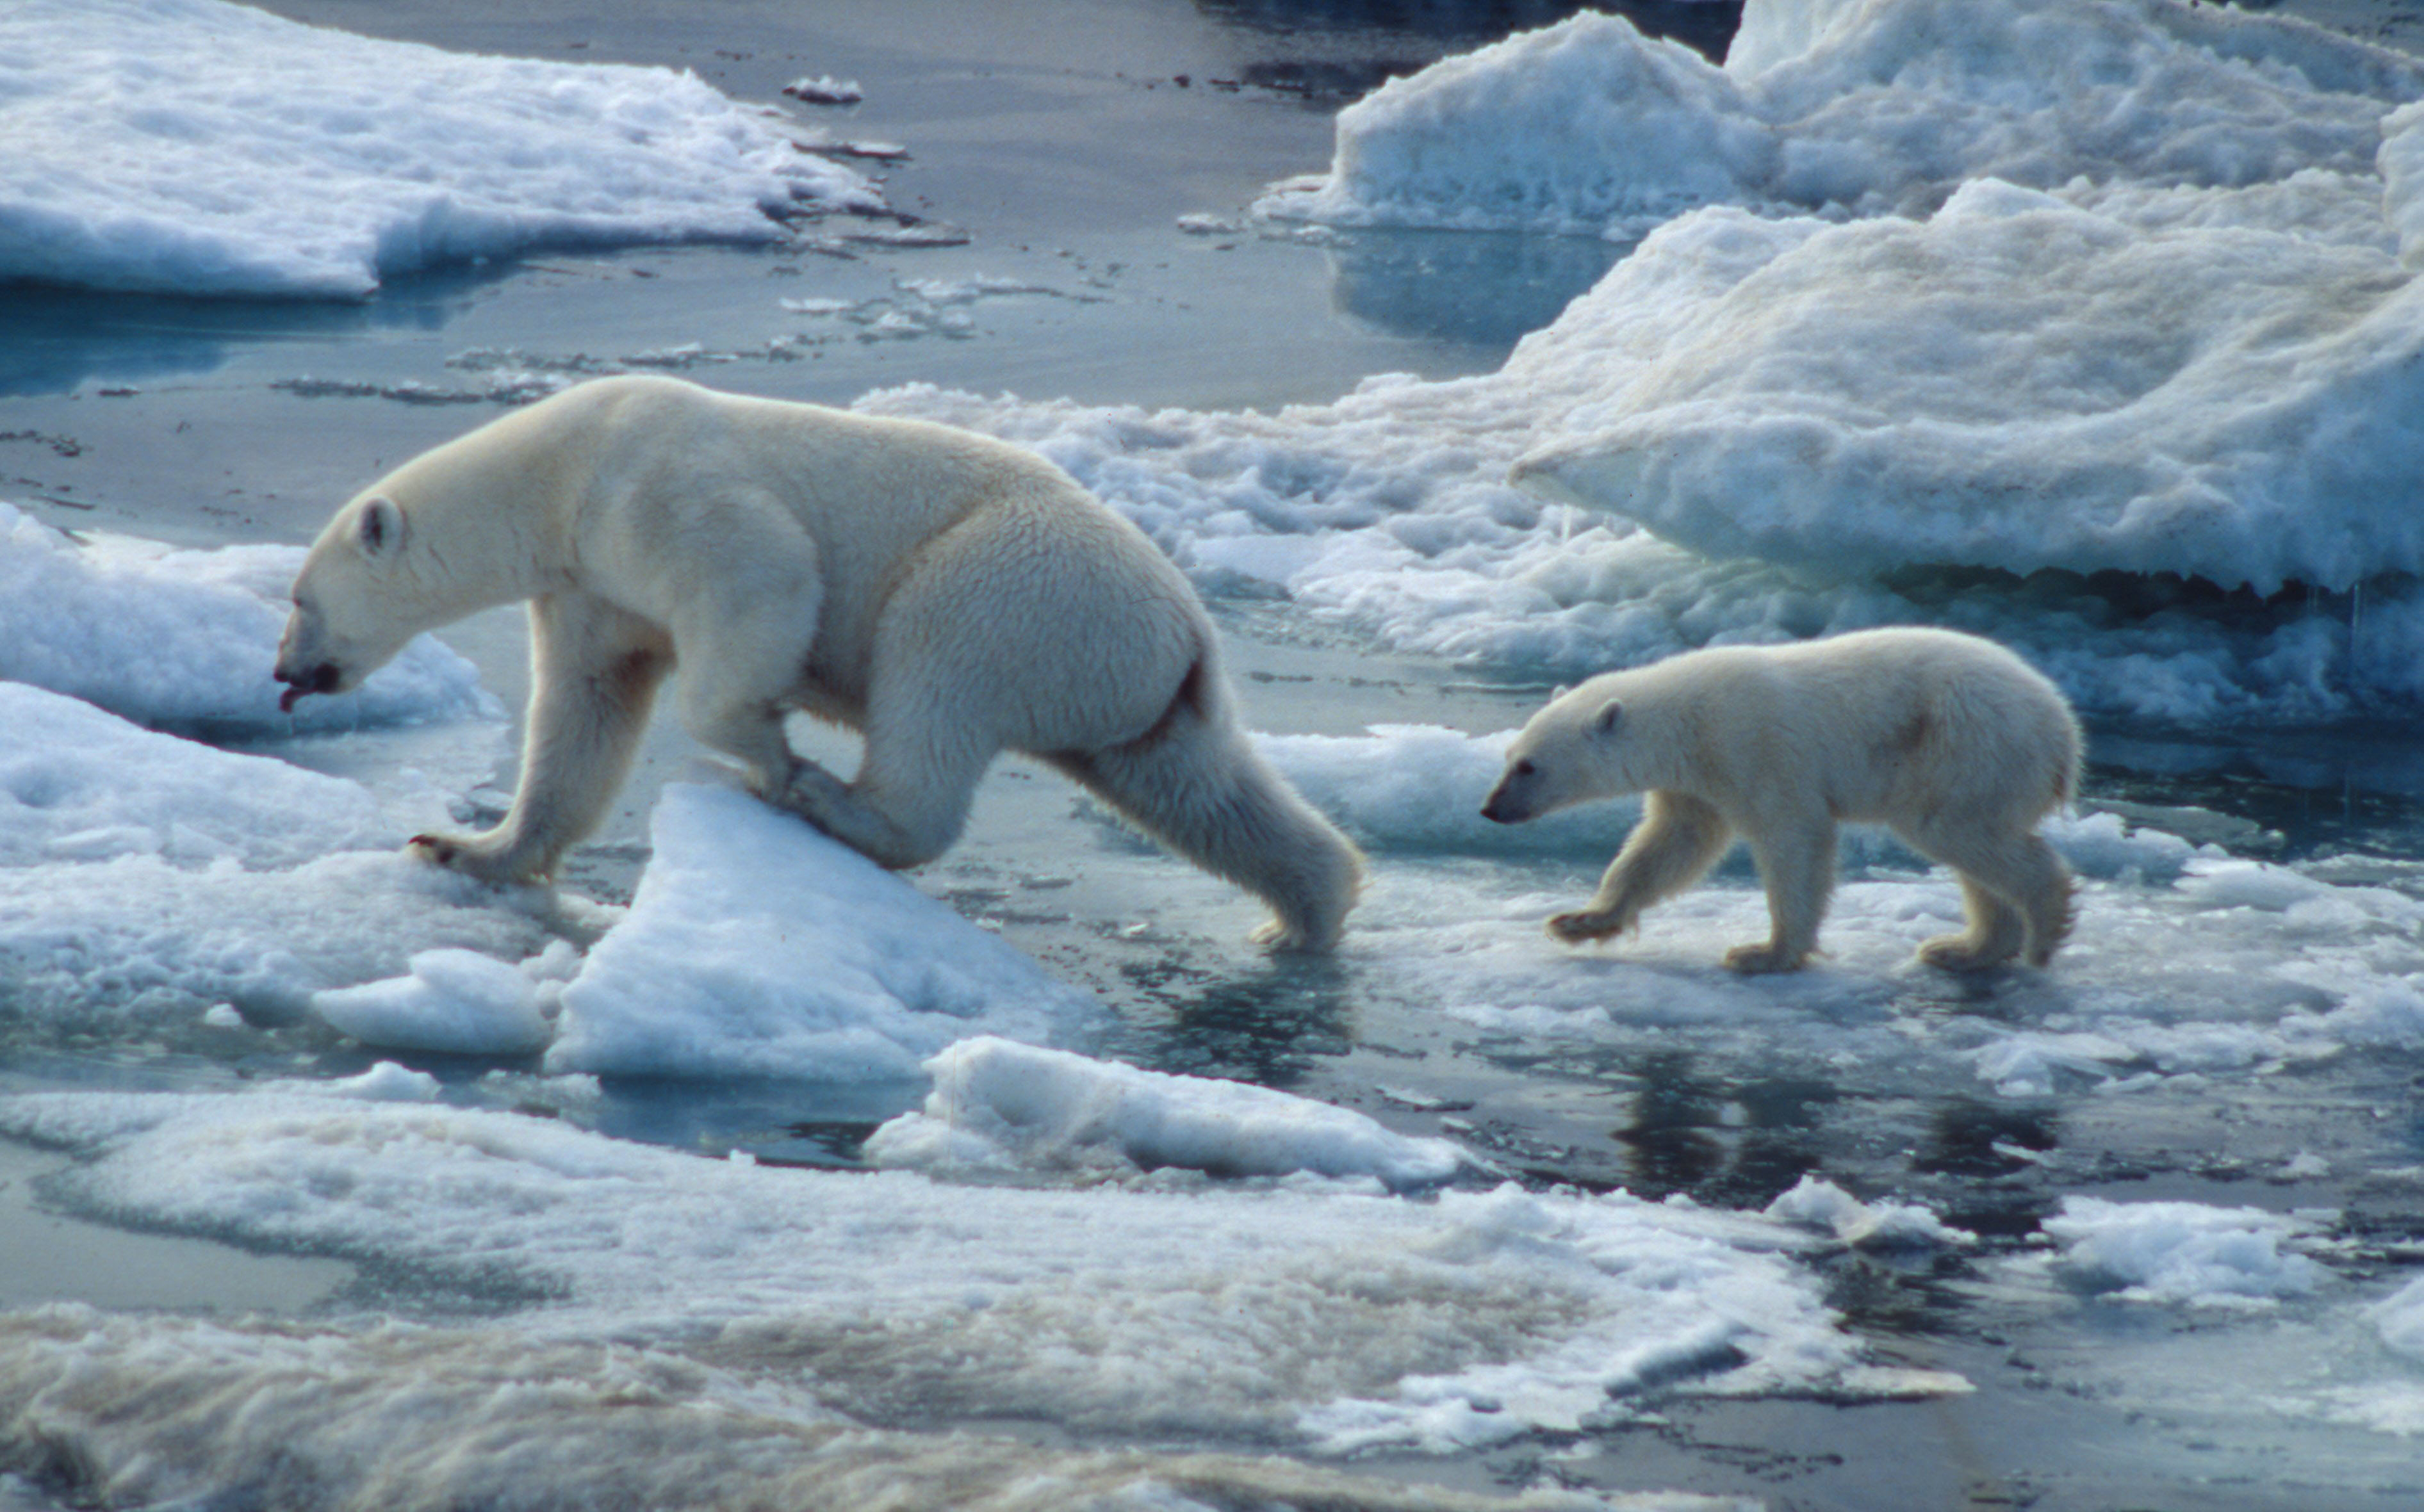 environmental factors affecting the survival of polar bears Yale environment 360: drastic measures are required to save the beleaguered animal from extinction, say scientists.